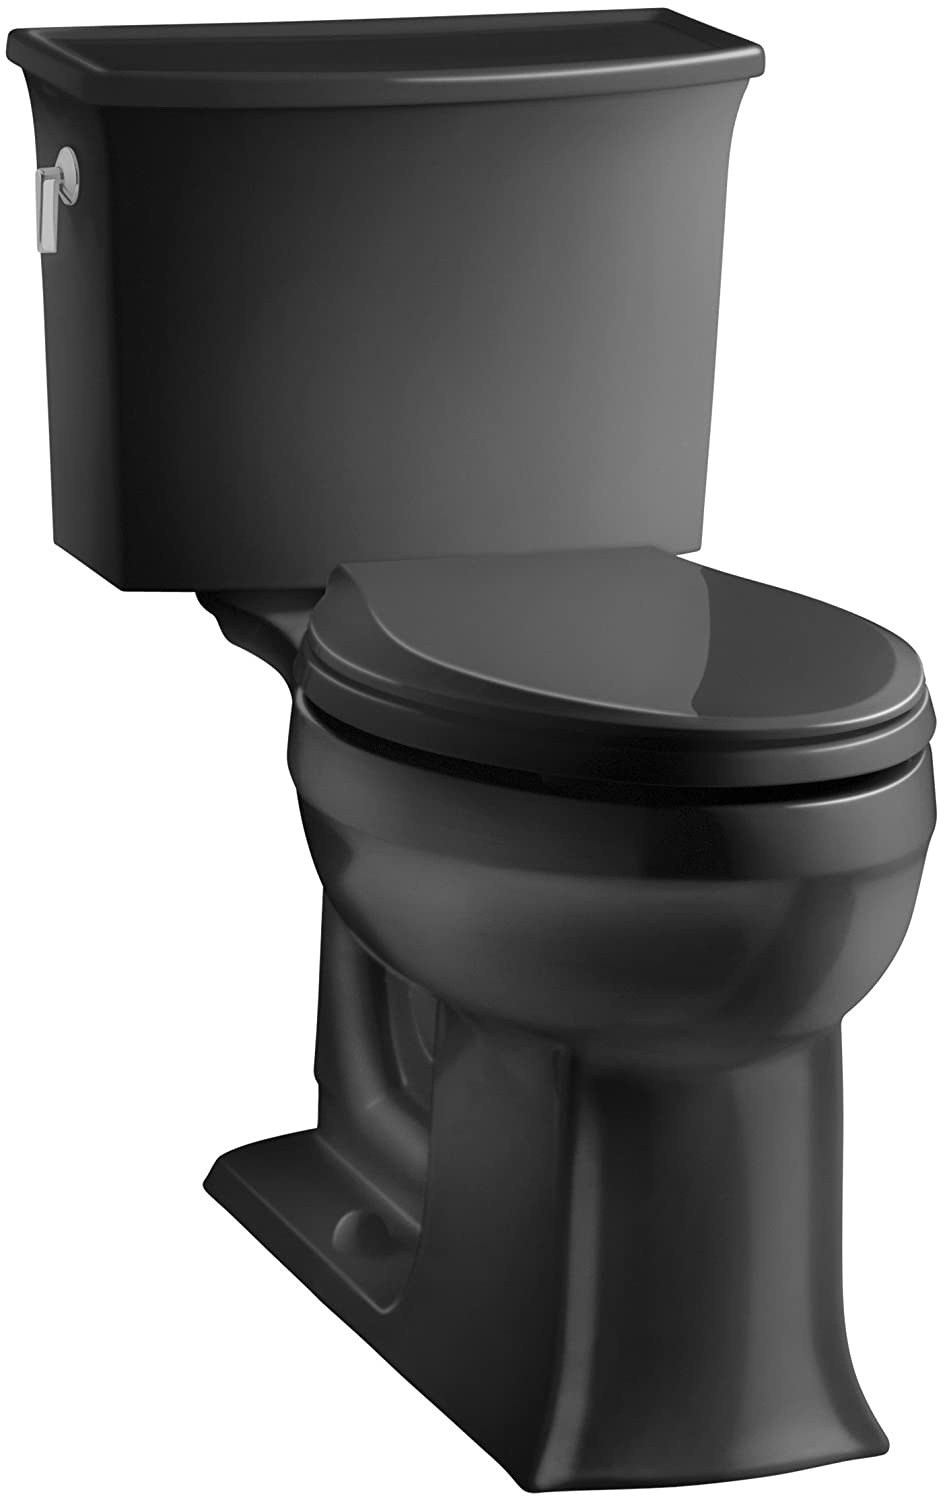 KOHLER K-3551-7 Archer Comfort Height Two-Piece Elongated 1.28 GPF ...